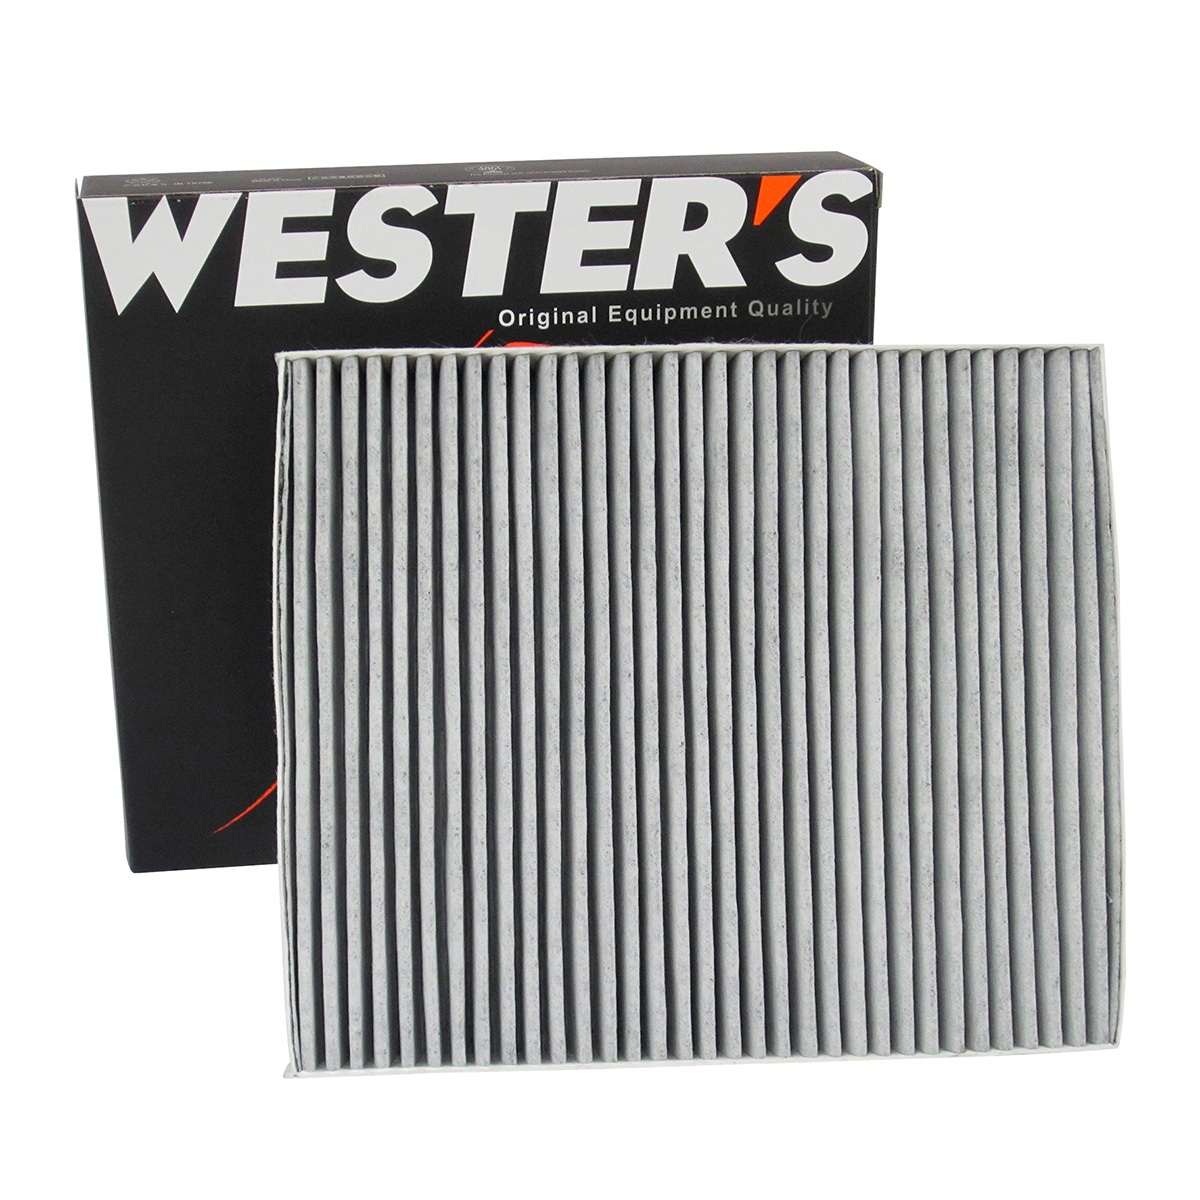 Audi a6l c6 c7 a7 built-in air filter filter格韦manchester blower external air filter air conditioning grid